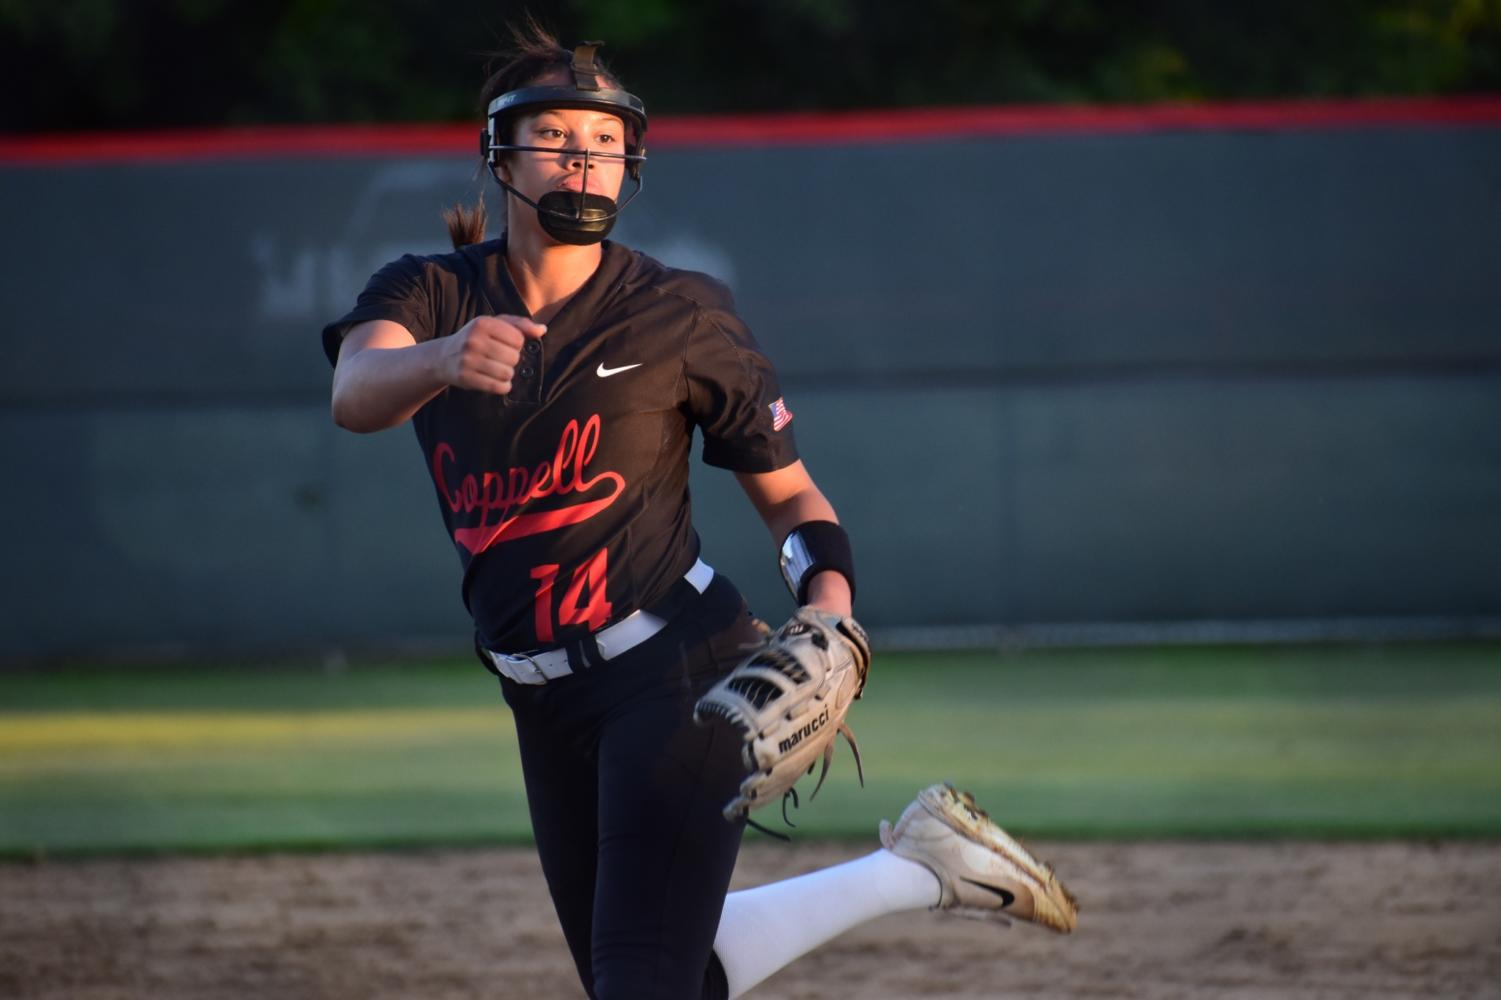 Coppell senior pitcher/centerfielder Nora Rodriguez pitches the ball to her opponent at the game against Keller at the Colleyville Heritage High School on Friday. The Cowgirls lost, 5-2, as their season ended in the first round of playoffs.